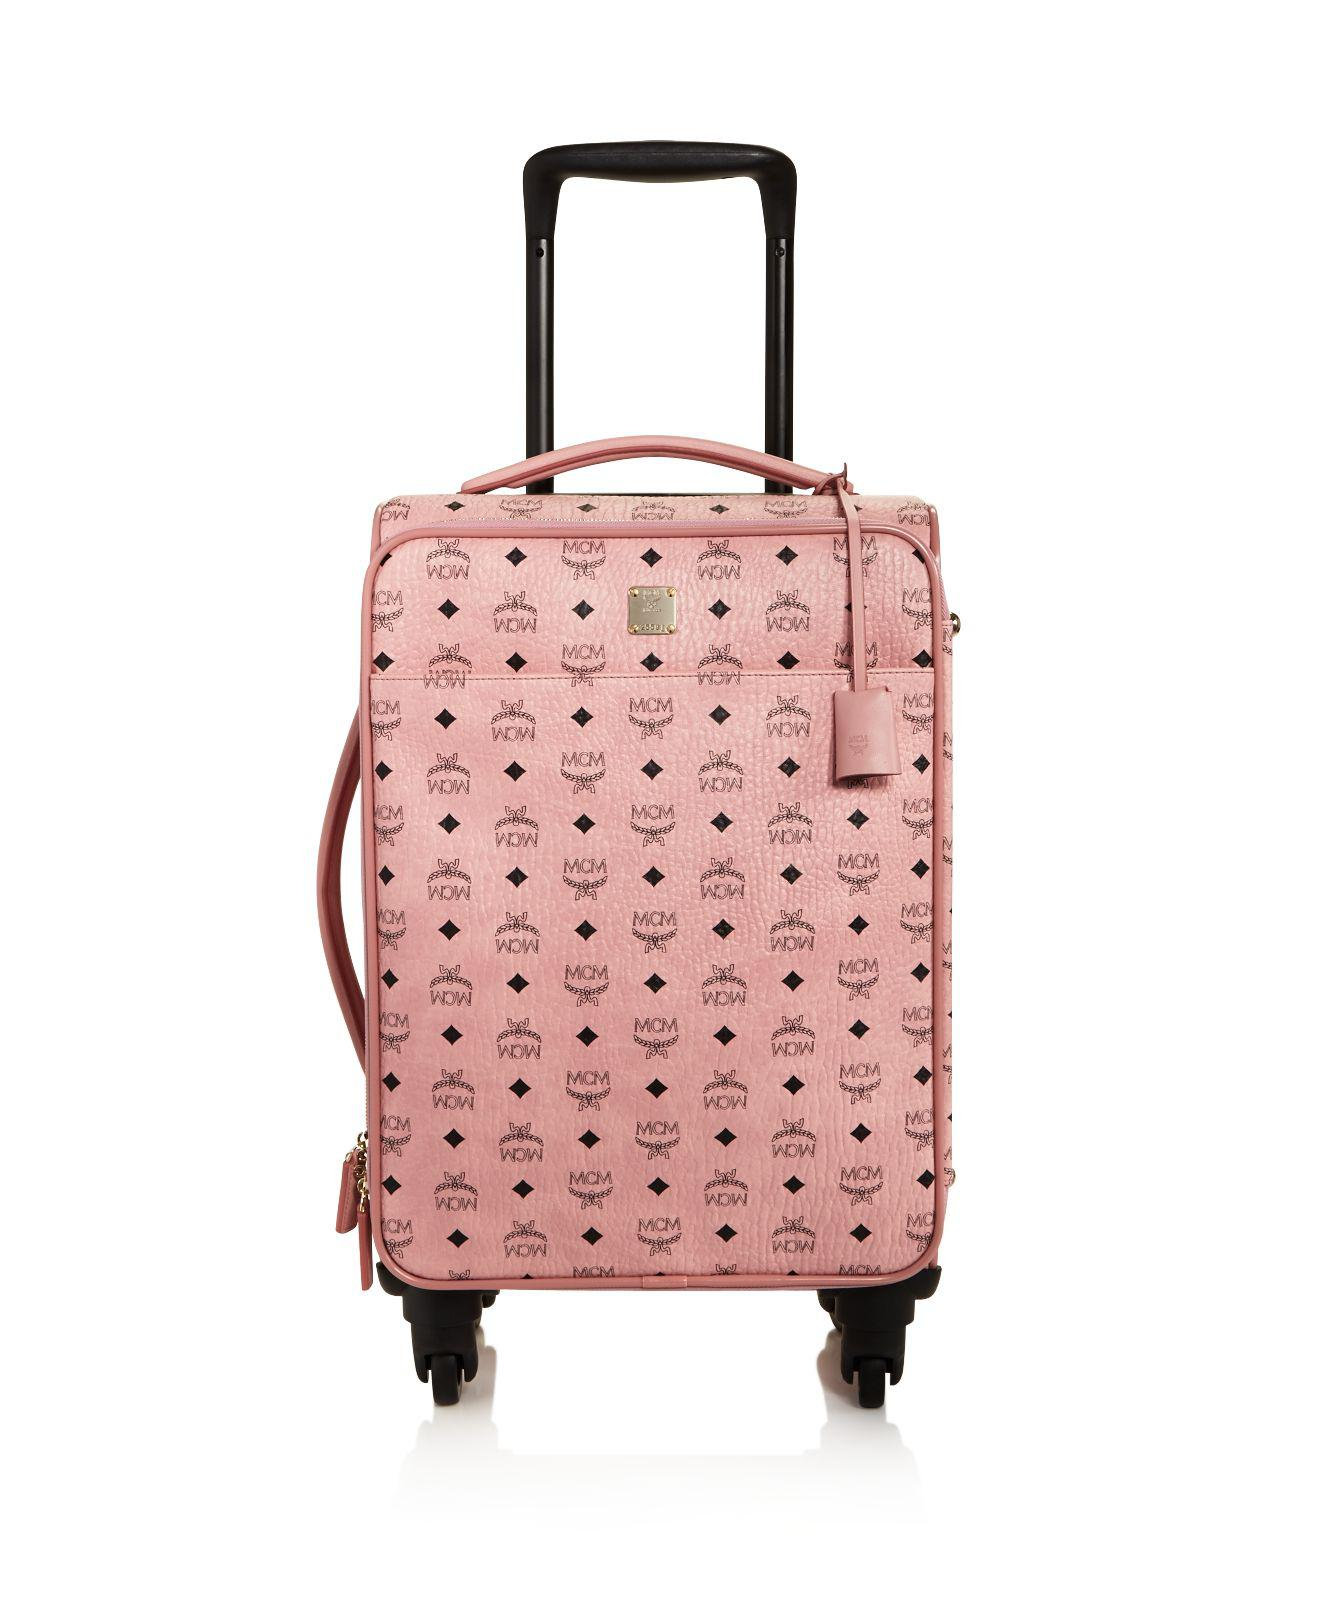 MCM Voyager Visetos Travel Trolley/Rolling Carryon Suitcase, Pink